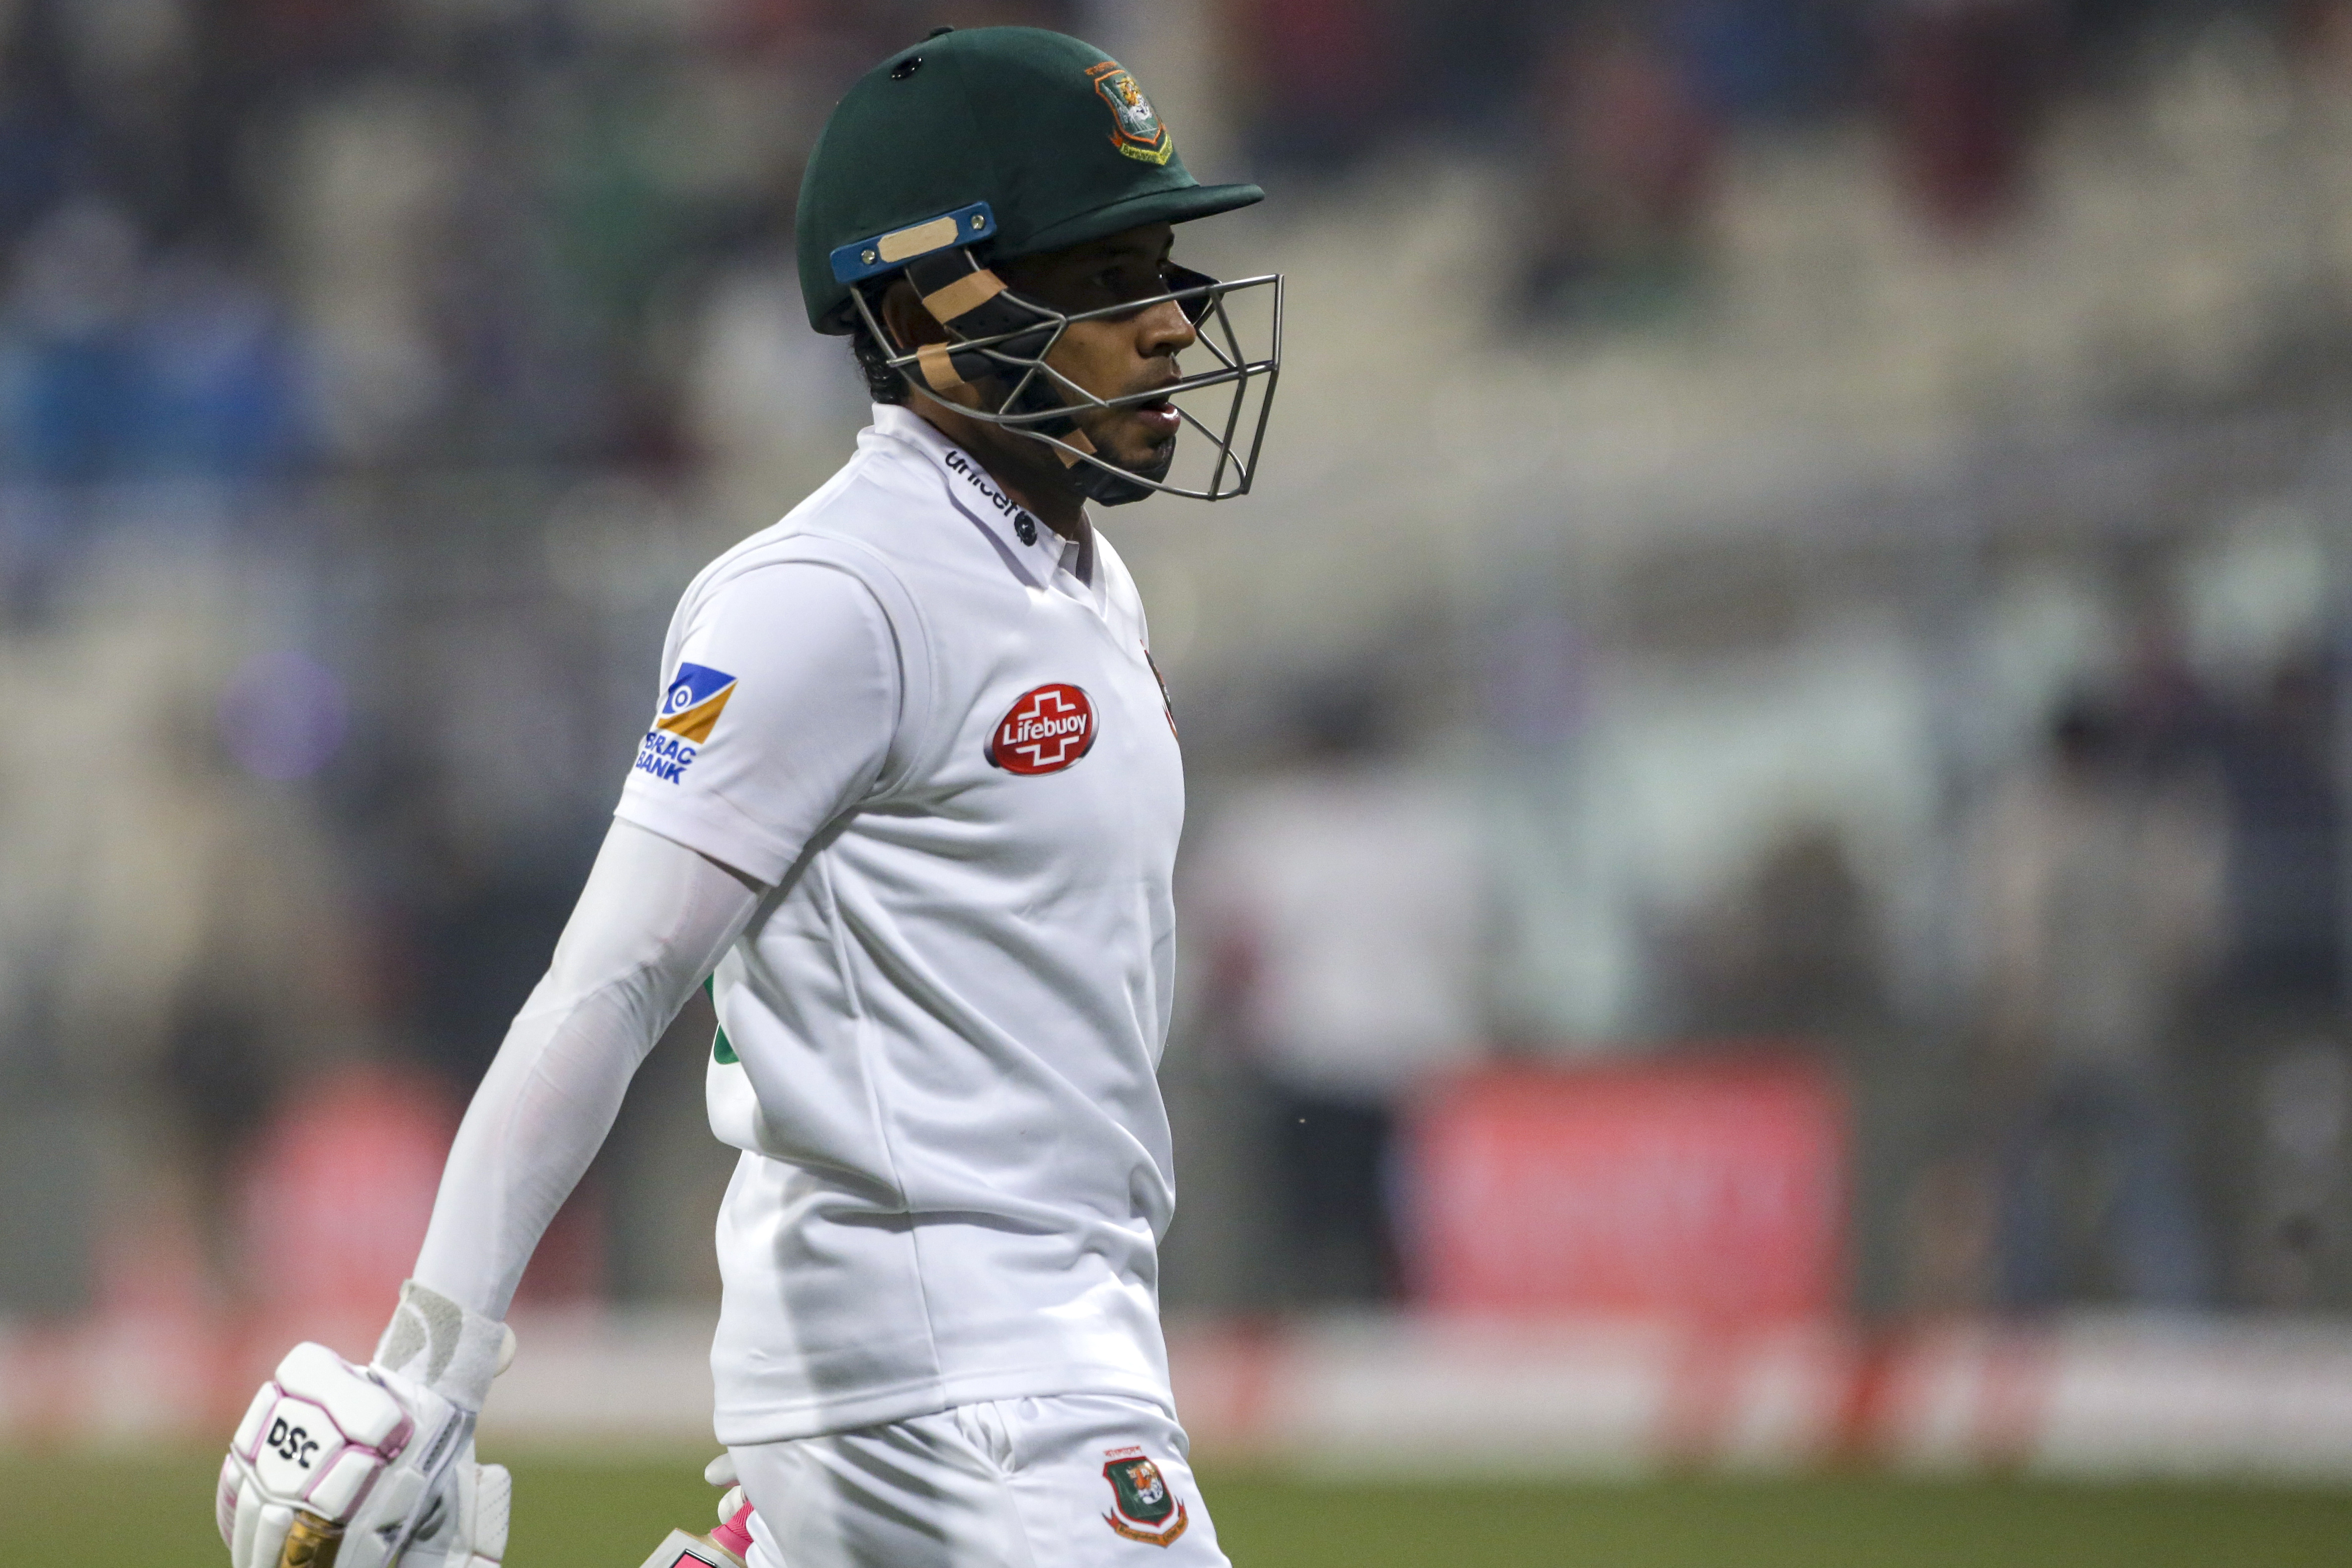 Mushfiqur Rahim reruns unbeaten for the day during the second day of the second test cricket match between India and Bangladesh, in Kolkata, India, on November 23, 2019